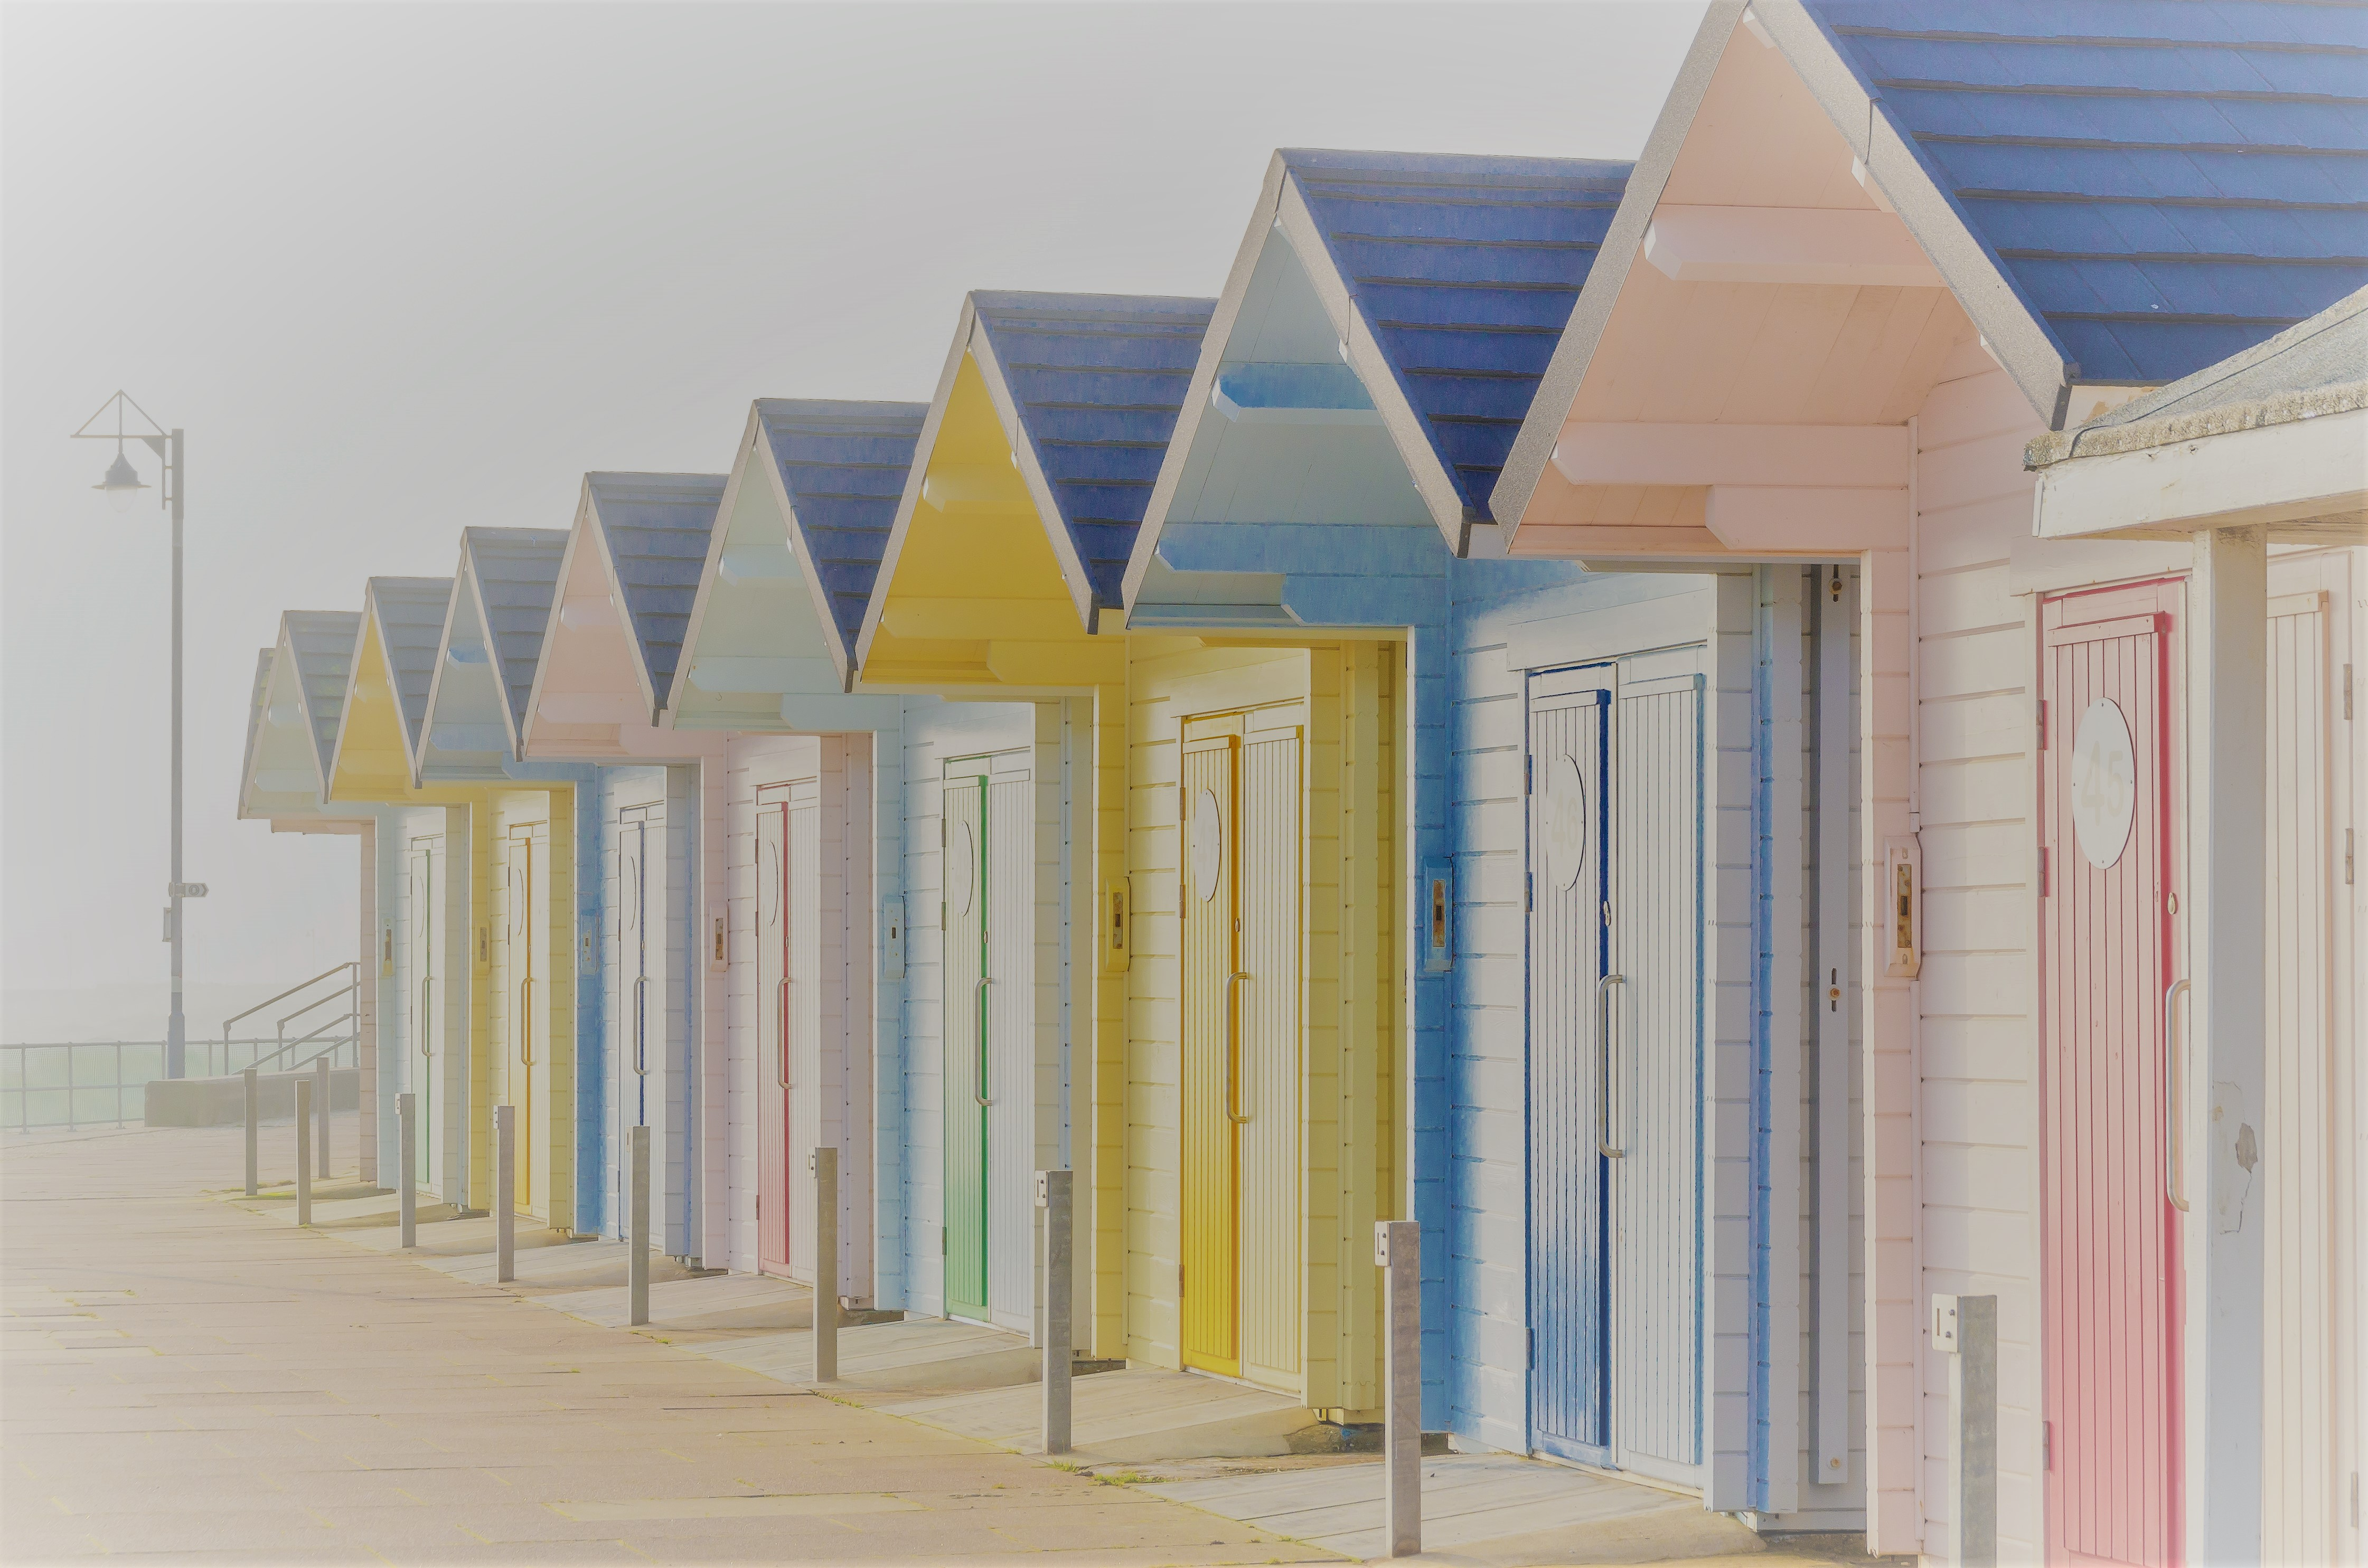 Beach huts in the mist